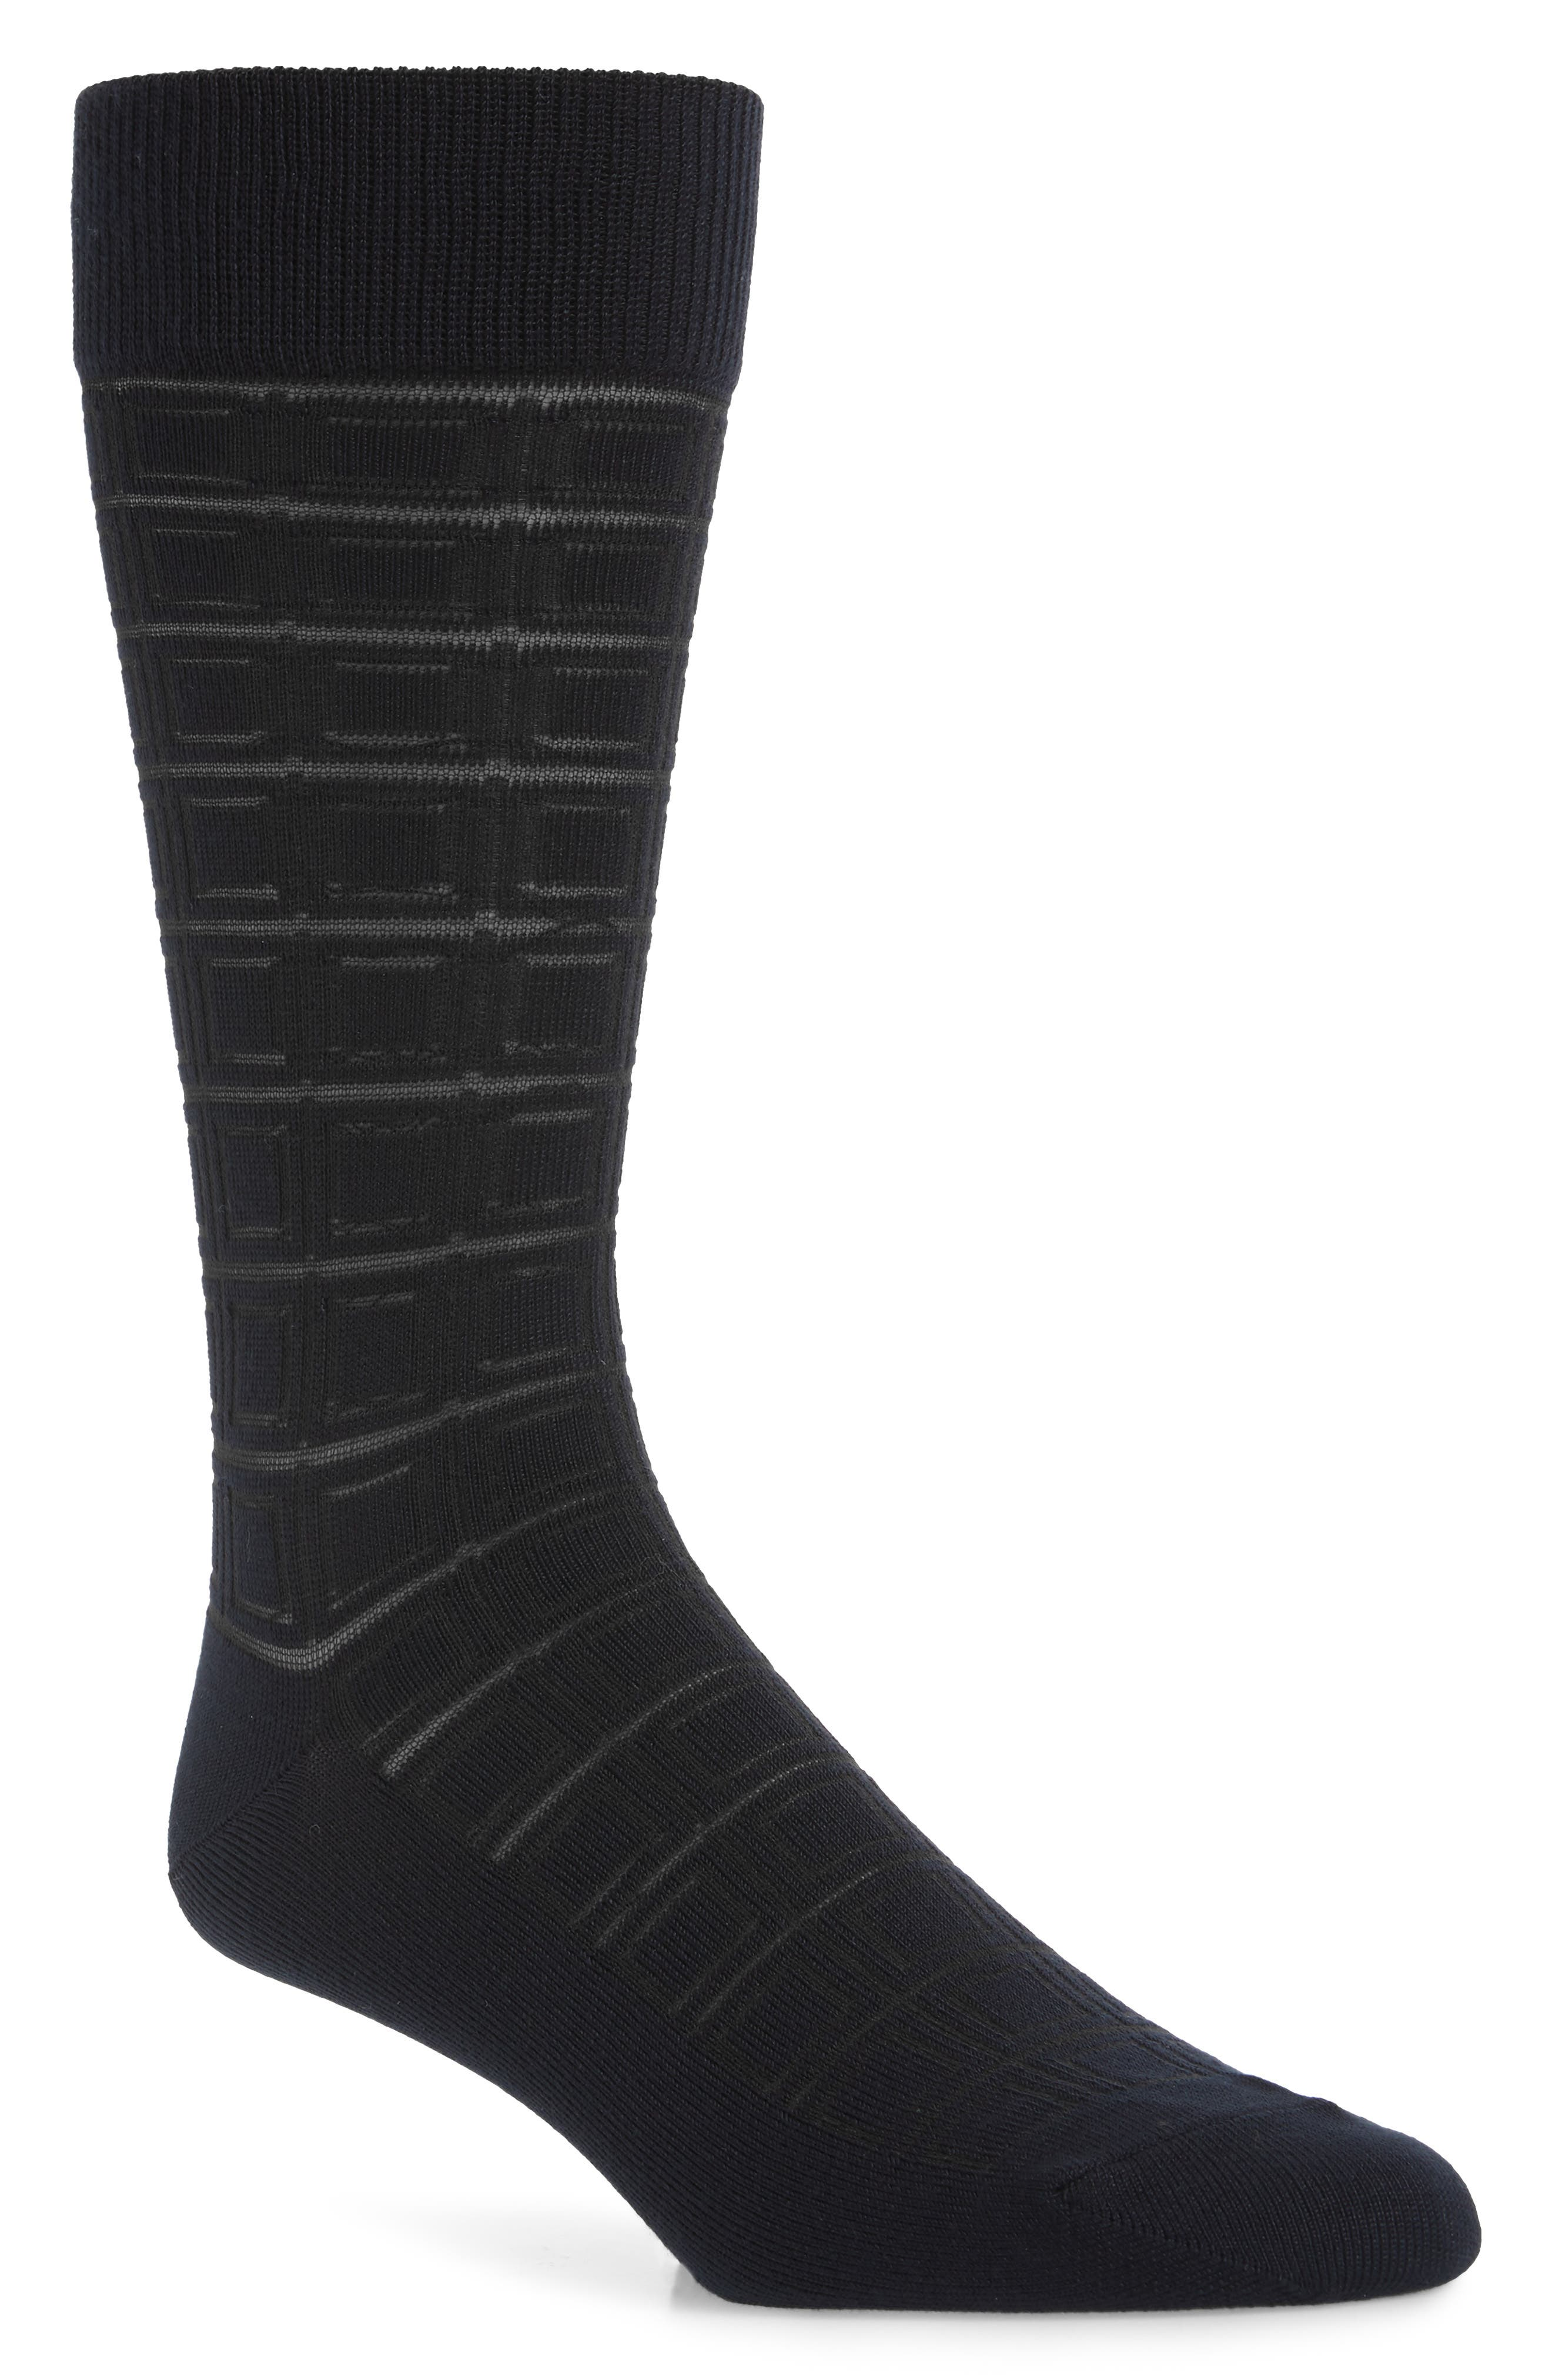 A soft and stretchy tech knit defines smart socks featuring a geometric pattern and stay-put ribbed cuffs. Style Name: Nordstrom Men\\\'s Shop Ultrasoft Geometric Dress Socks (Buy More & Save). Style Number: 5937884. Available in stores.